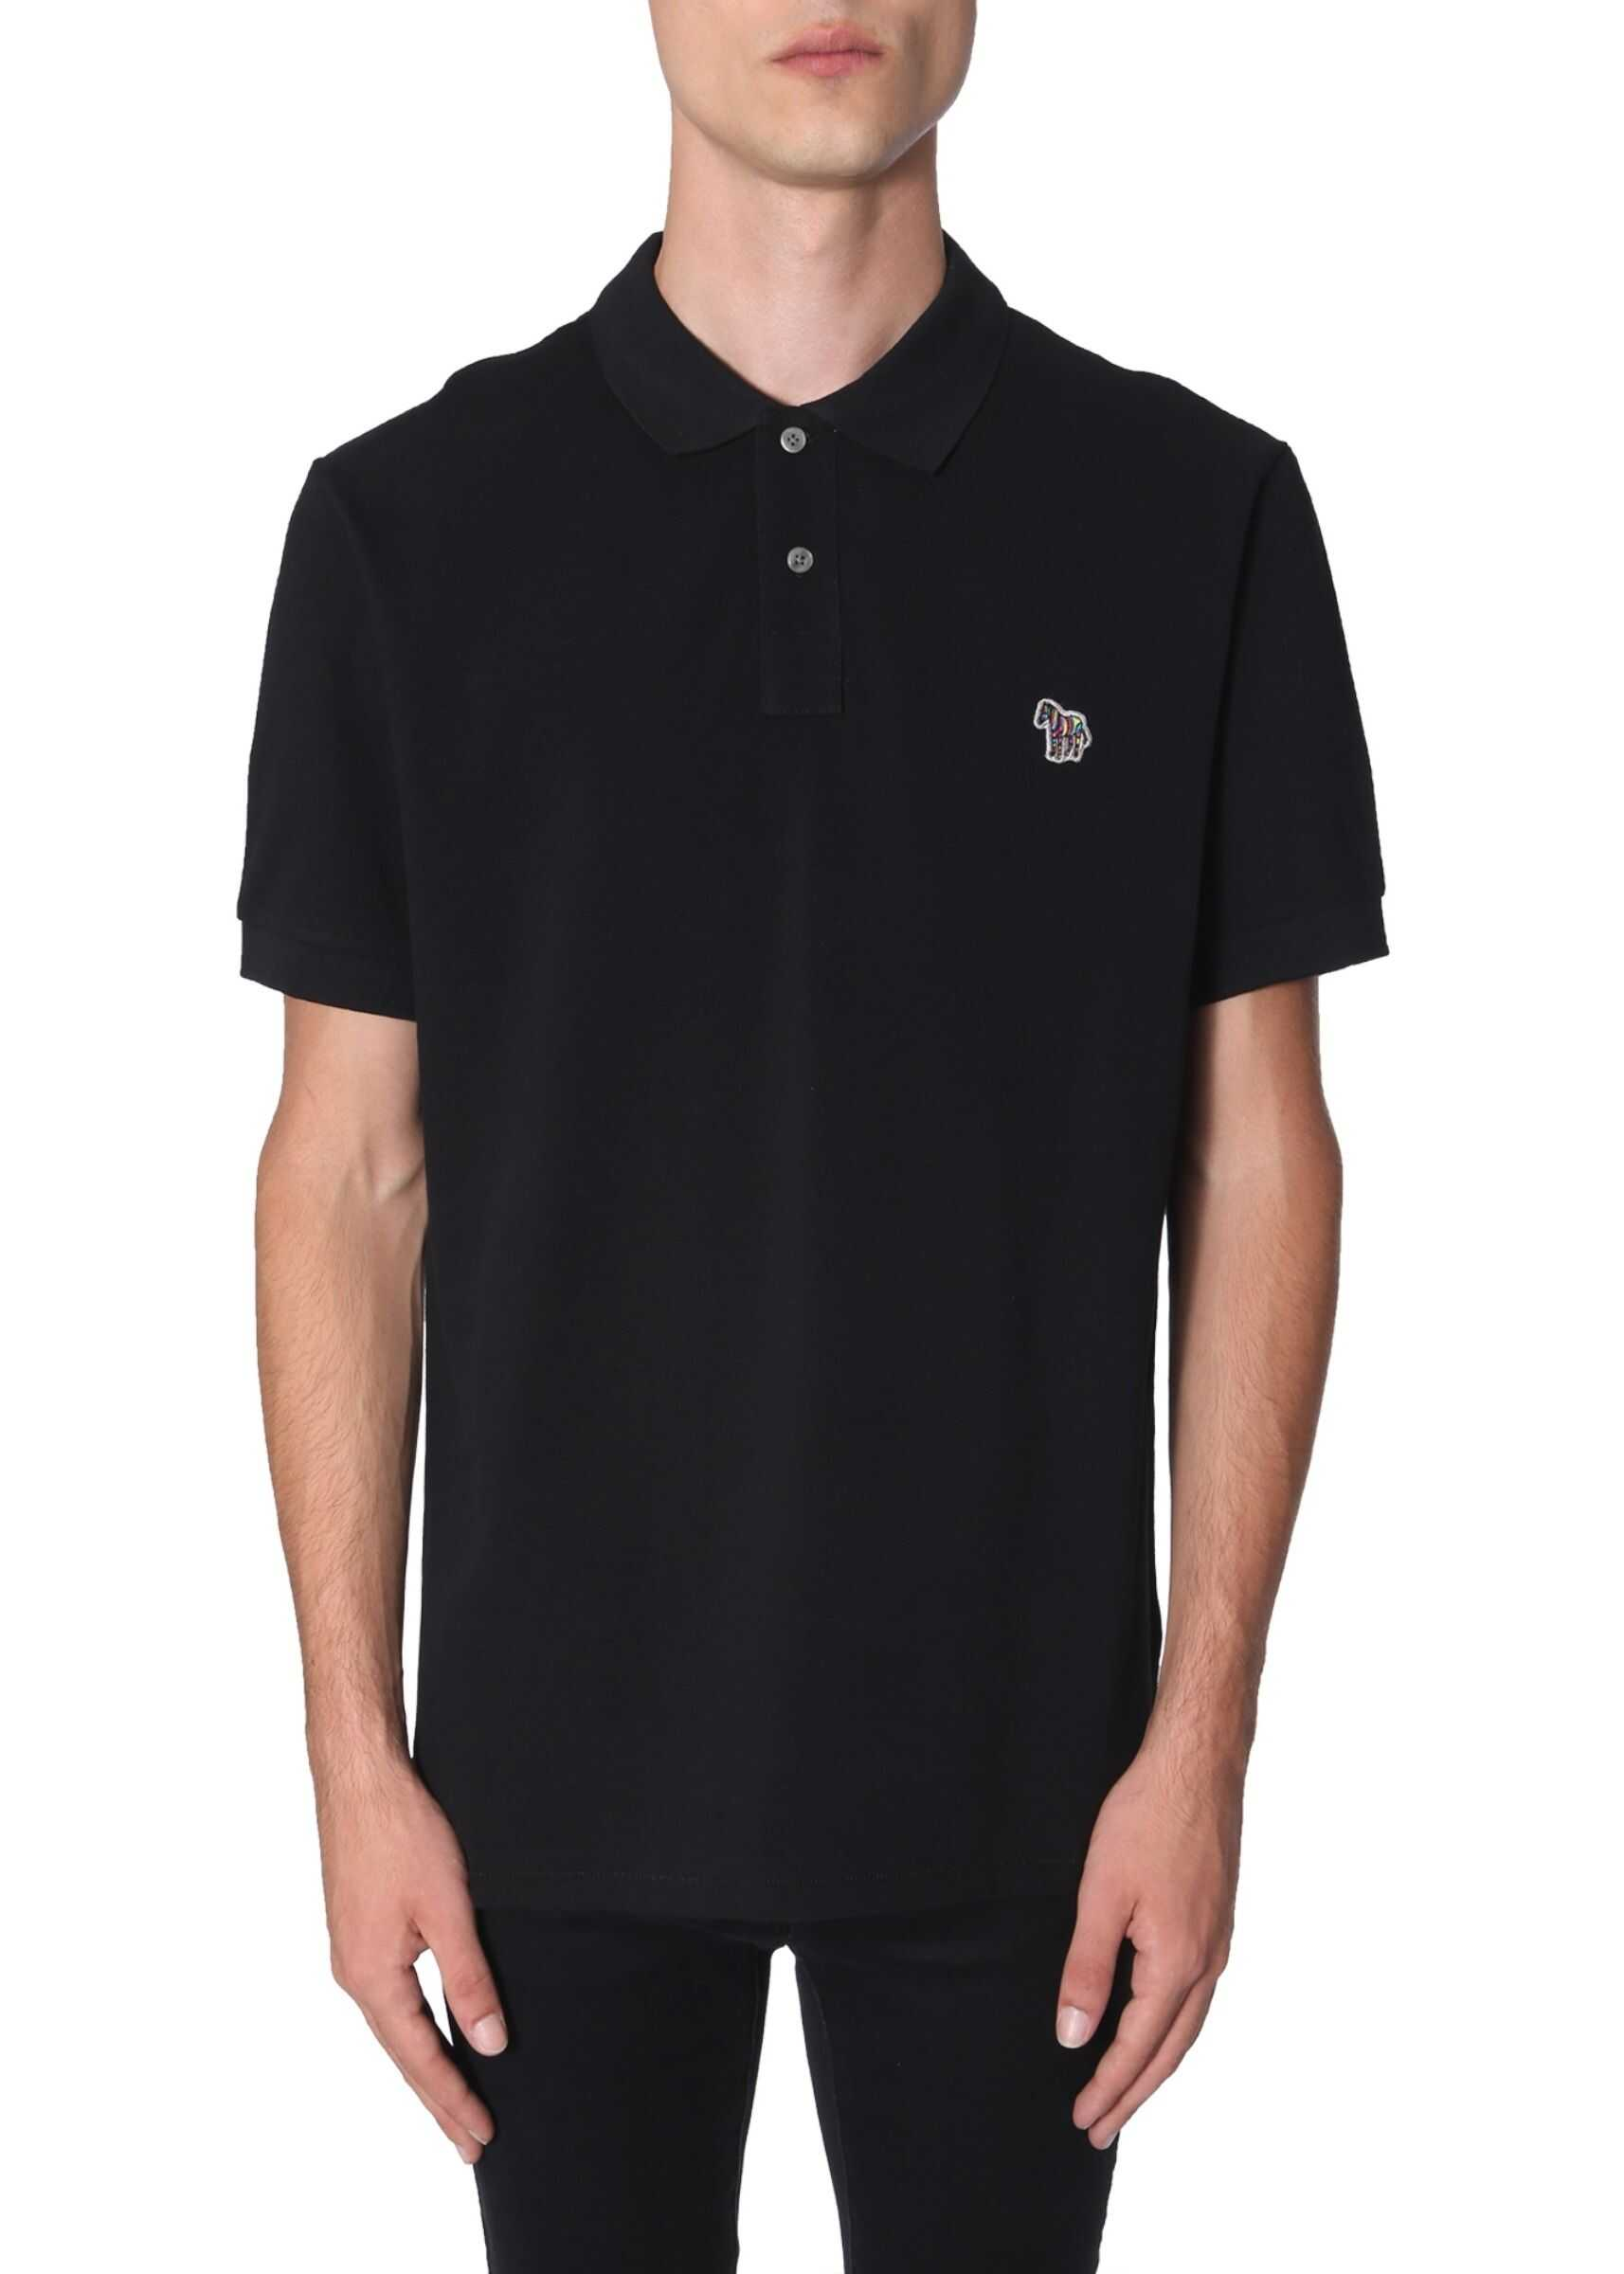 PS by Paul Smith Regular Fit Polo BLACK imagine